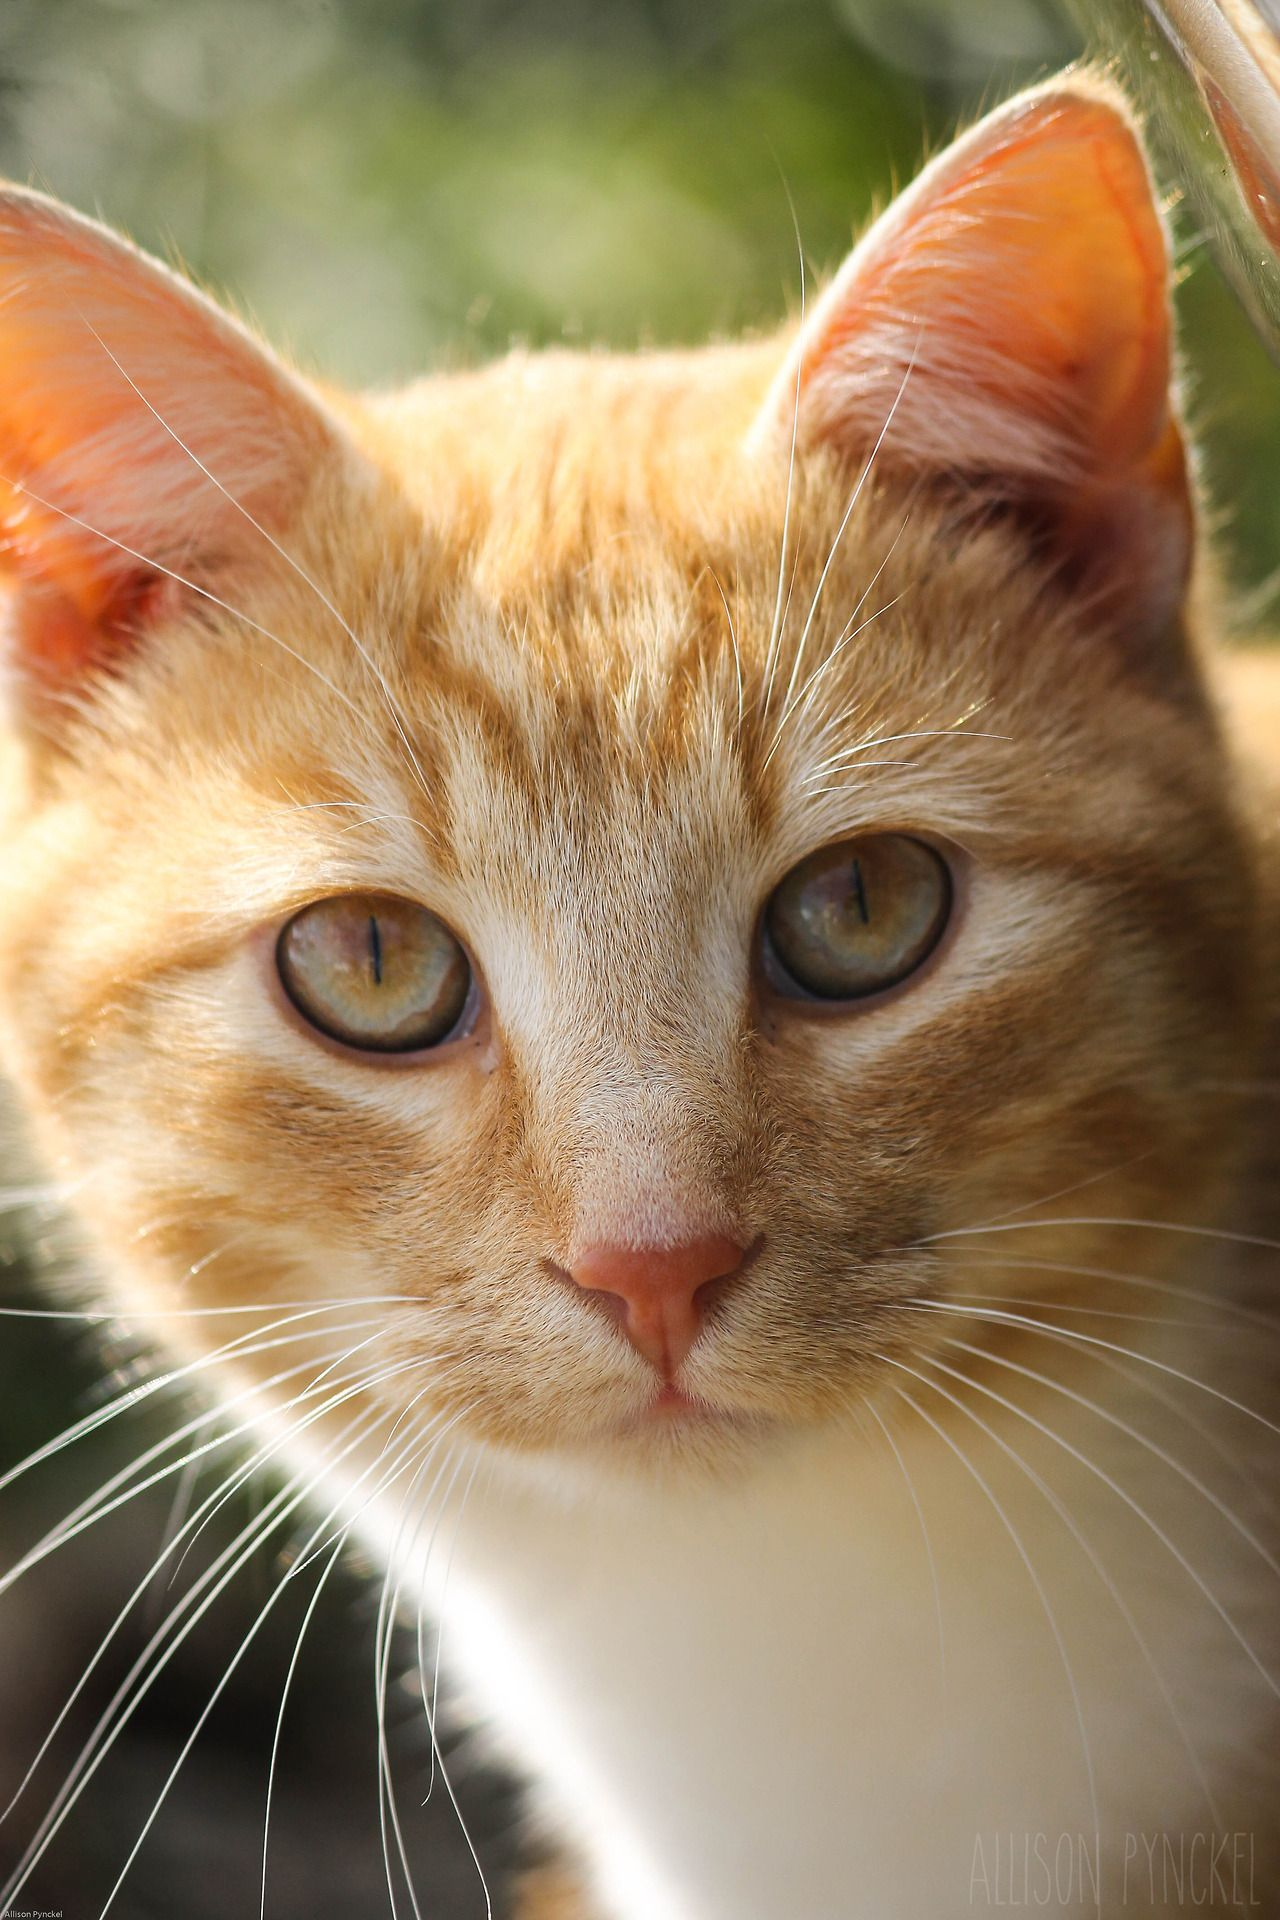 Handsome White tabby cat, Orange tabby cats, Cats